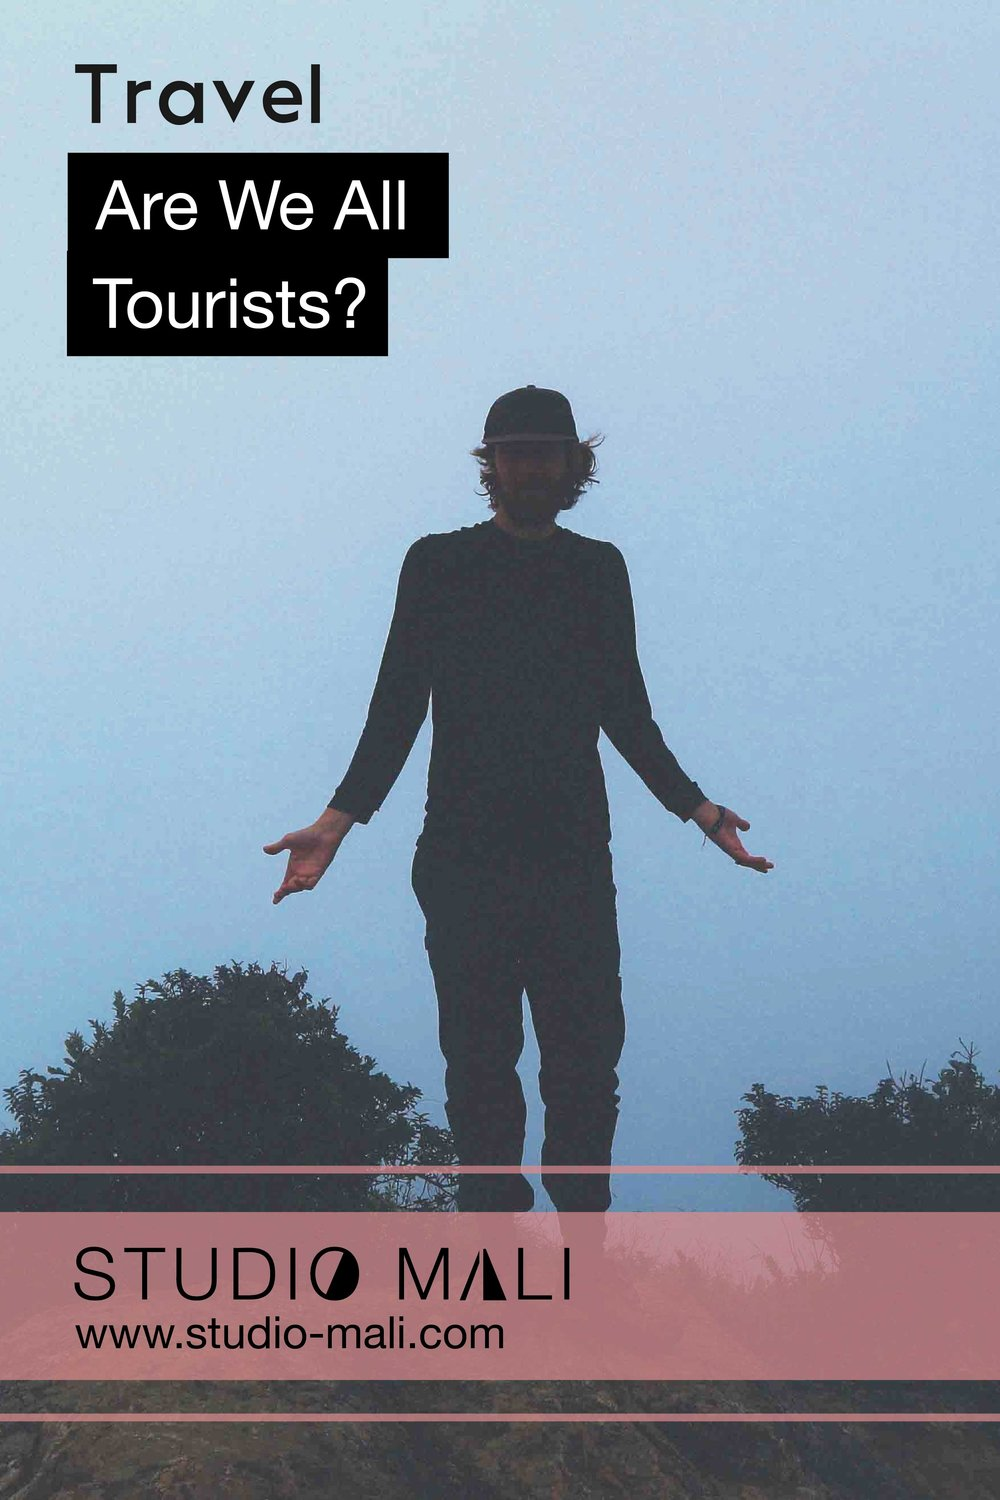 Travel - Are We All Tourists? By Studio Mali.jpg